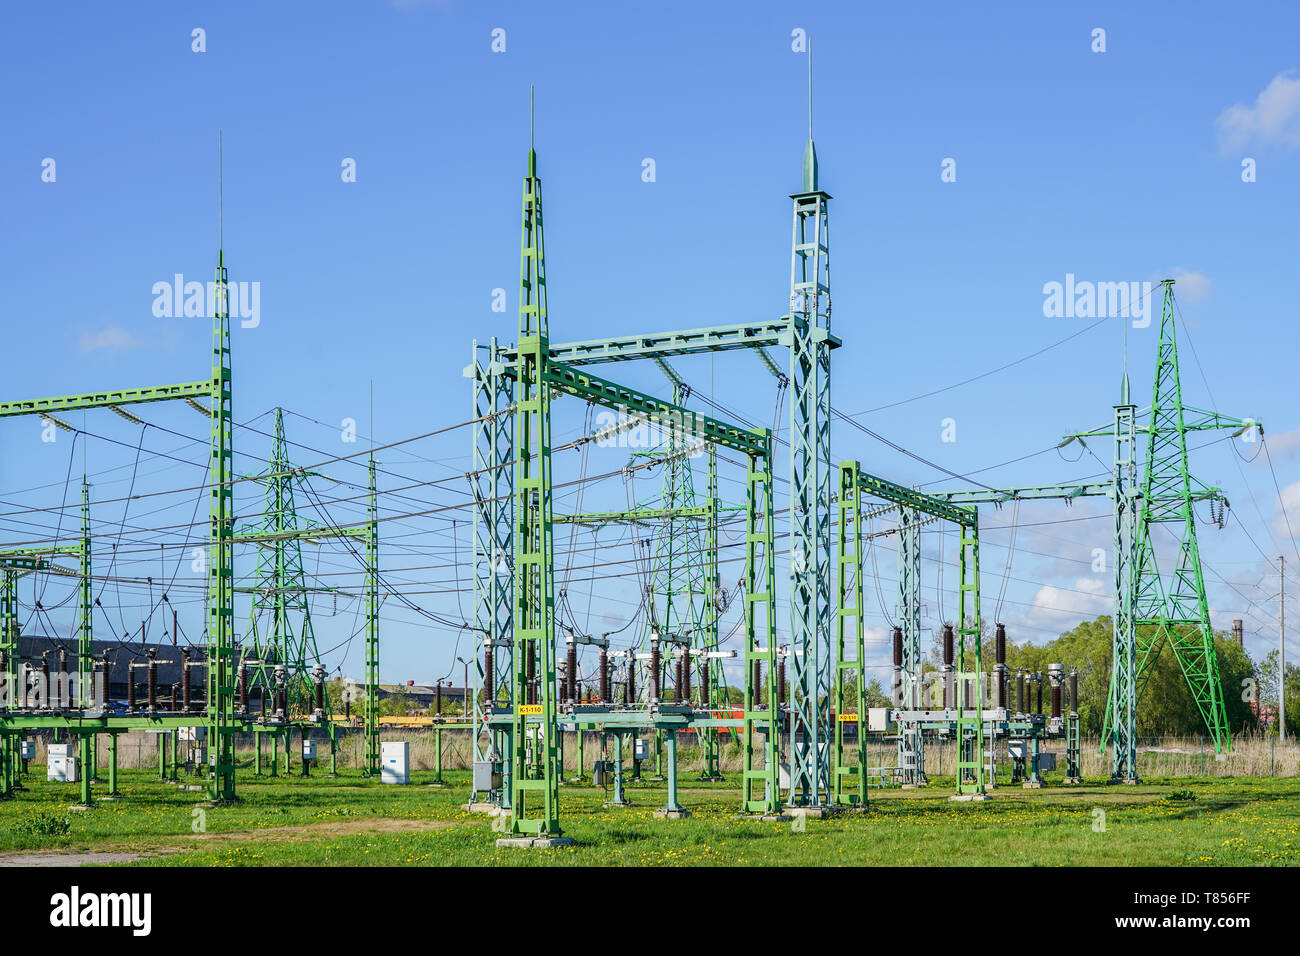 Electricity and power generation industry electric power transformation substation - Stock Image